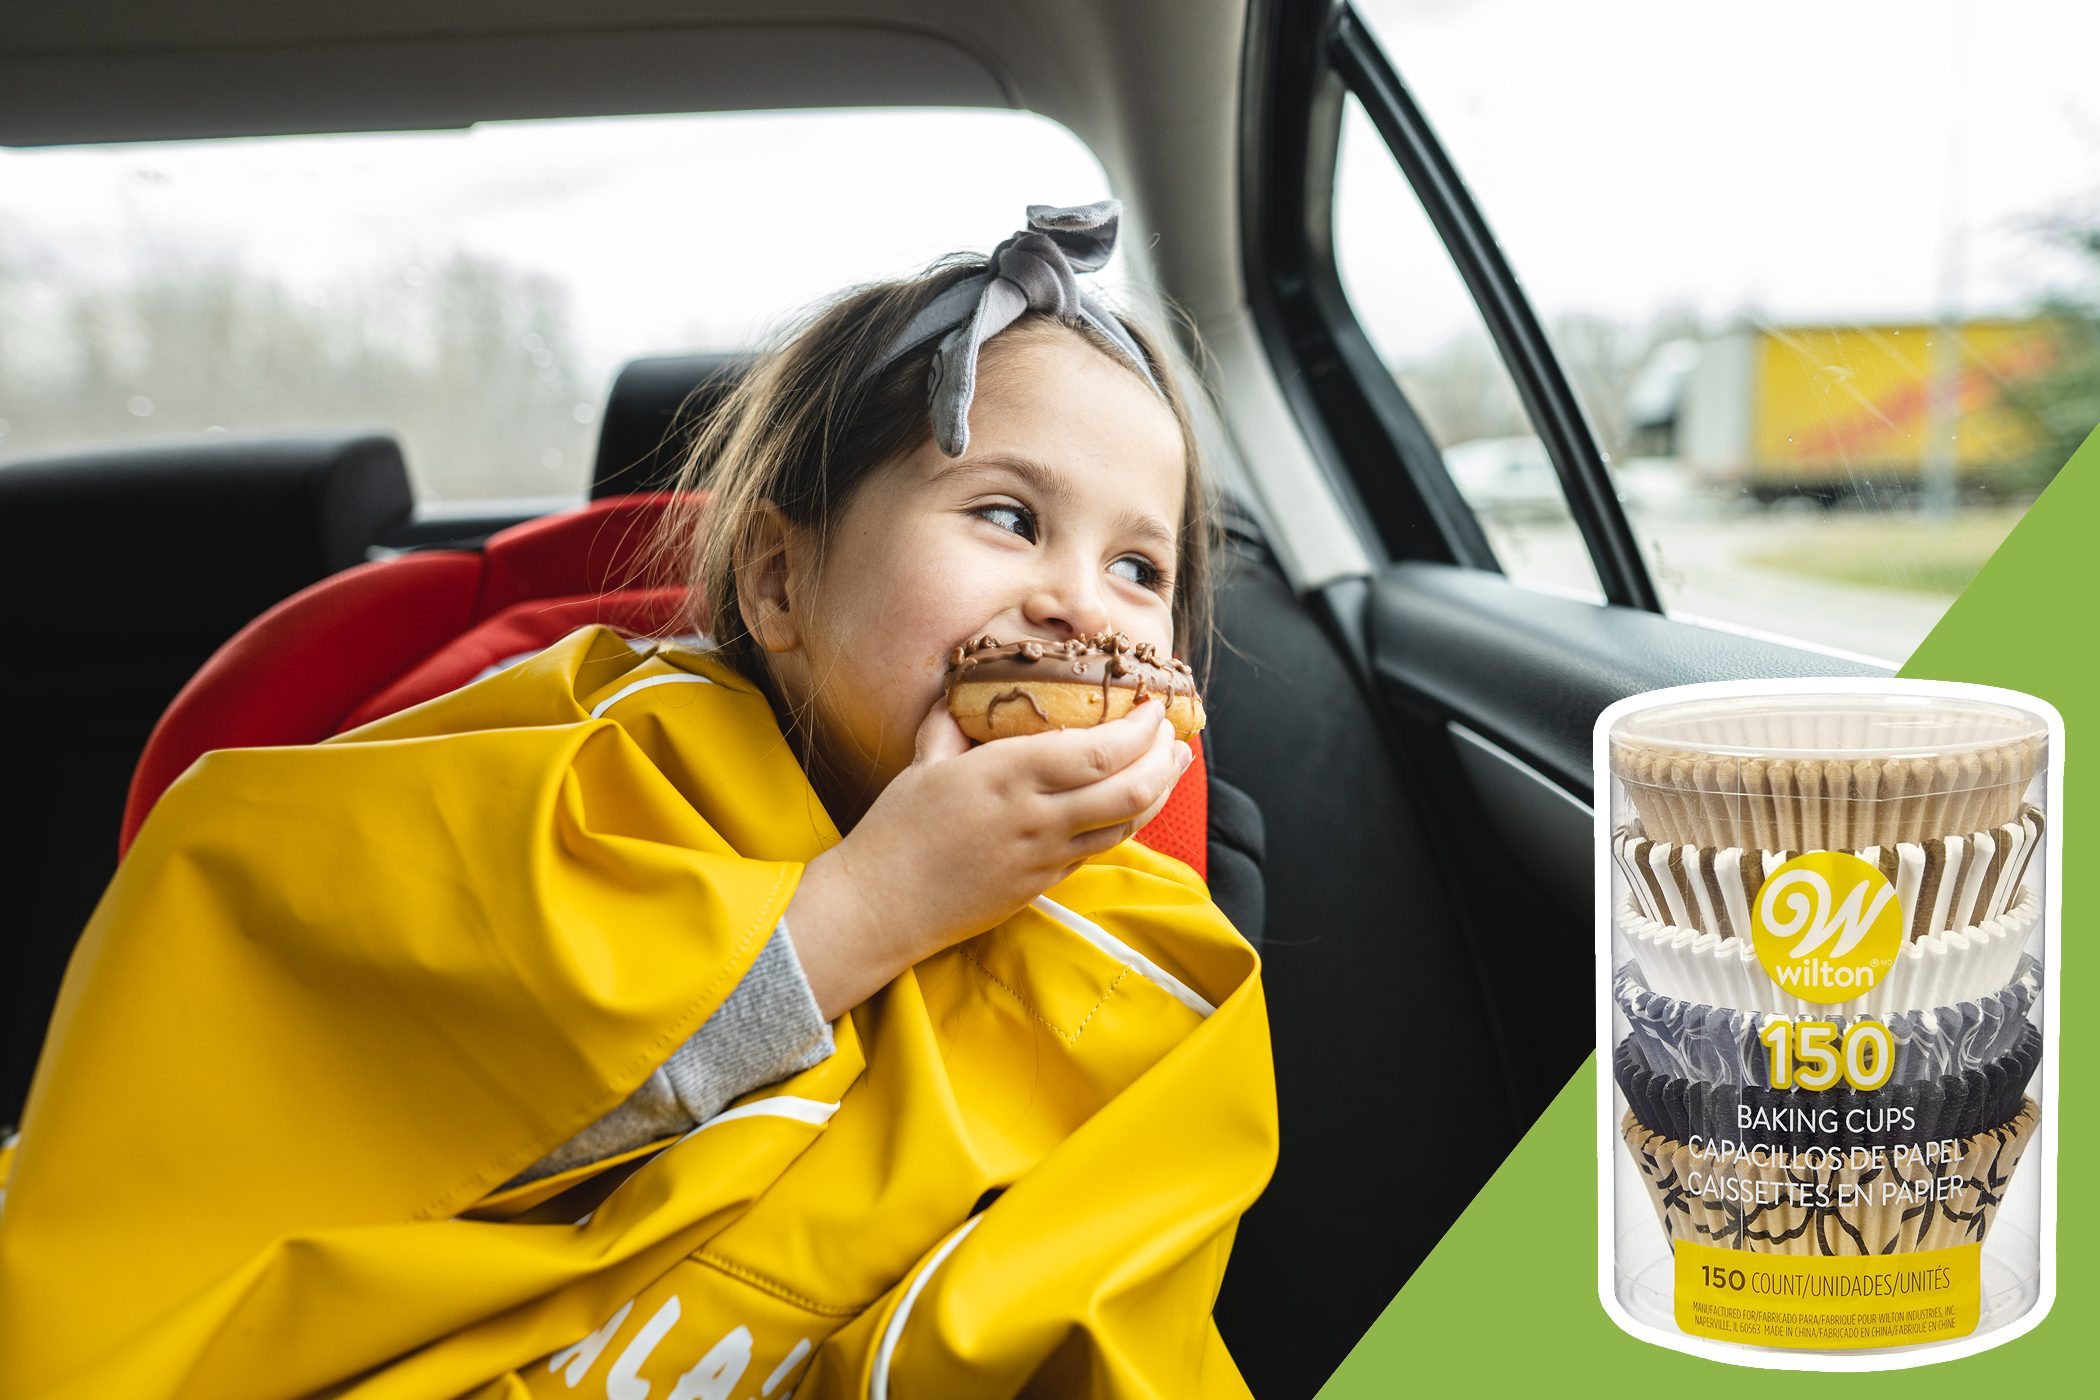 child eating in the backseat of car with inset of cupcake holders